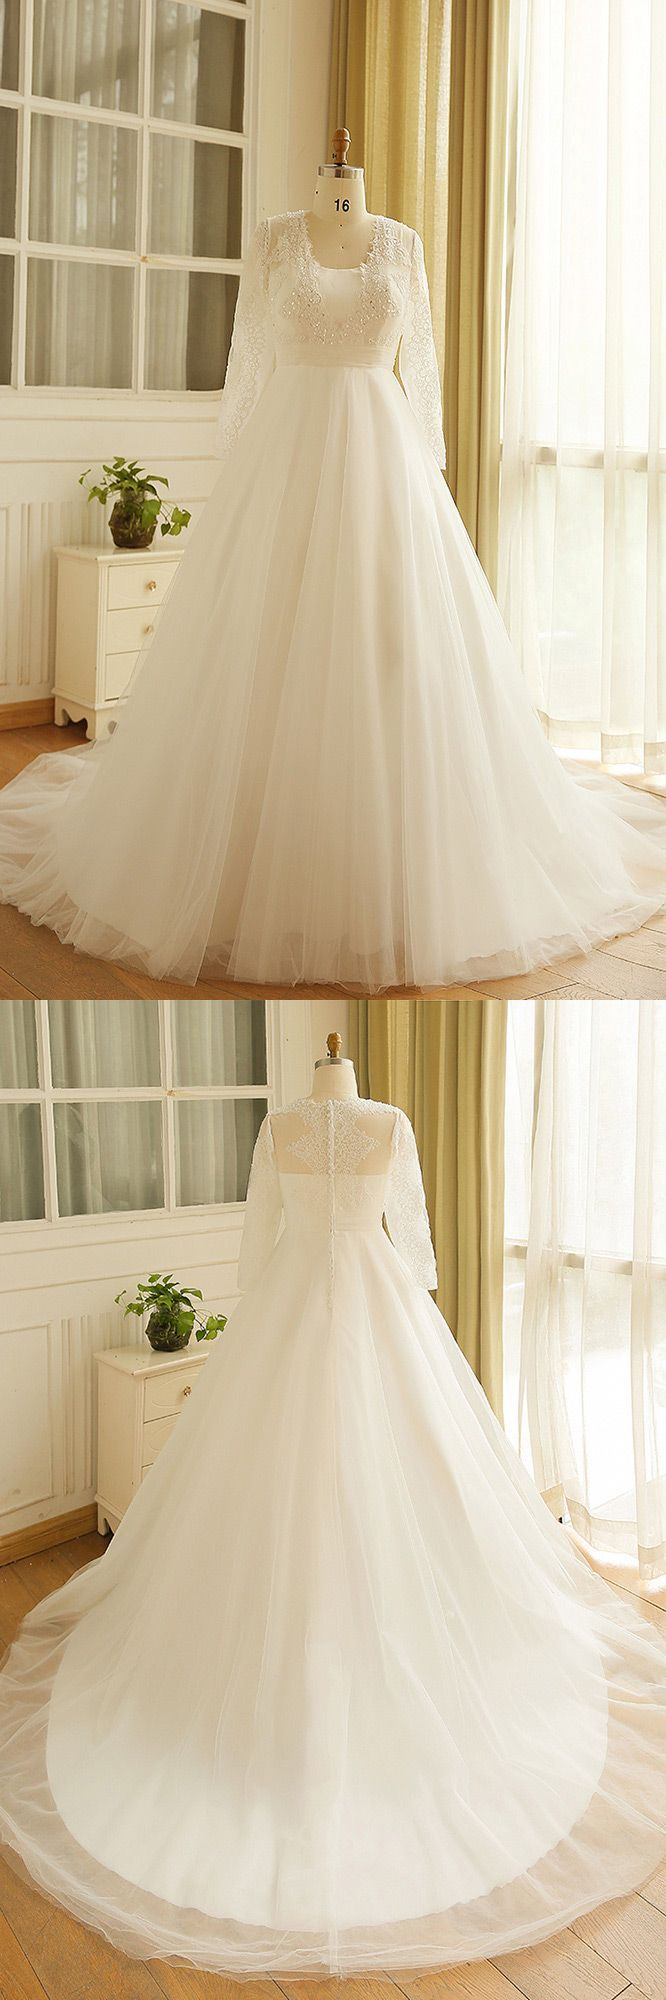 Modest long sleeve wedding gown  Modest Long Lace Sleeve Plus Size Wedding Dress Tulle Beach Weddings